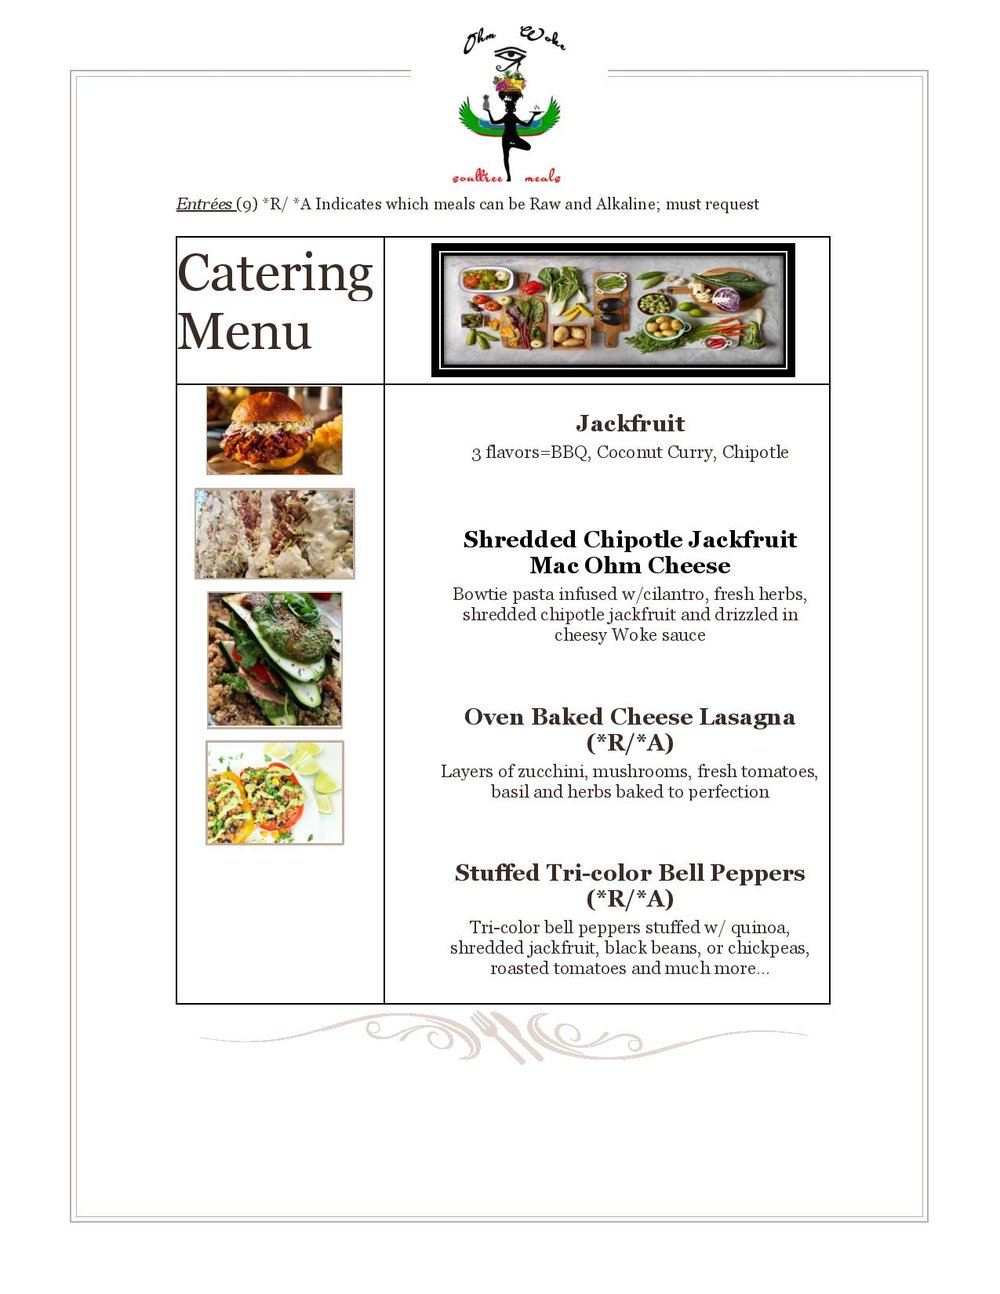 OHM CATERING Menu-page-001.jpg